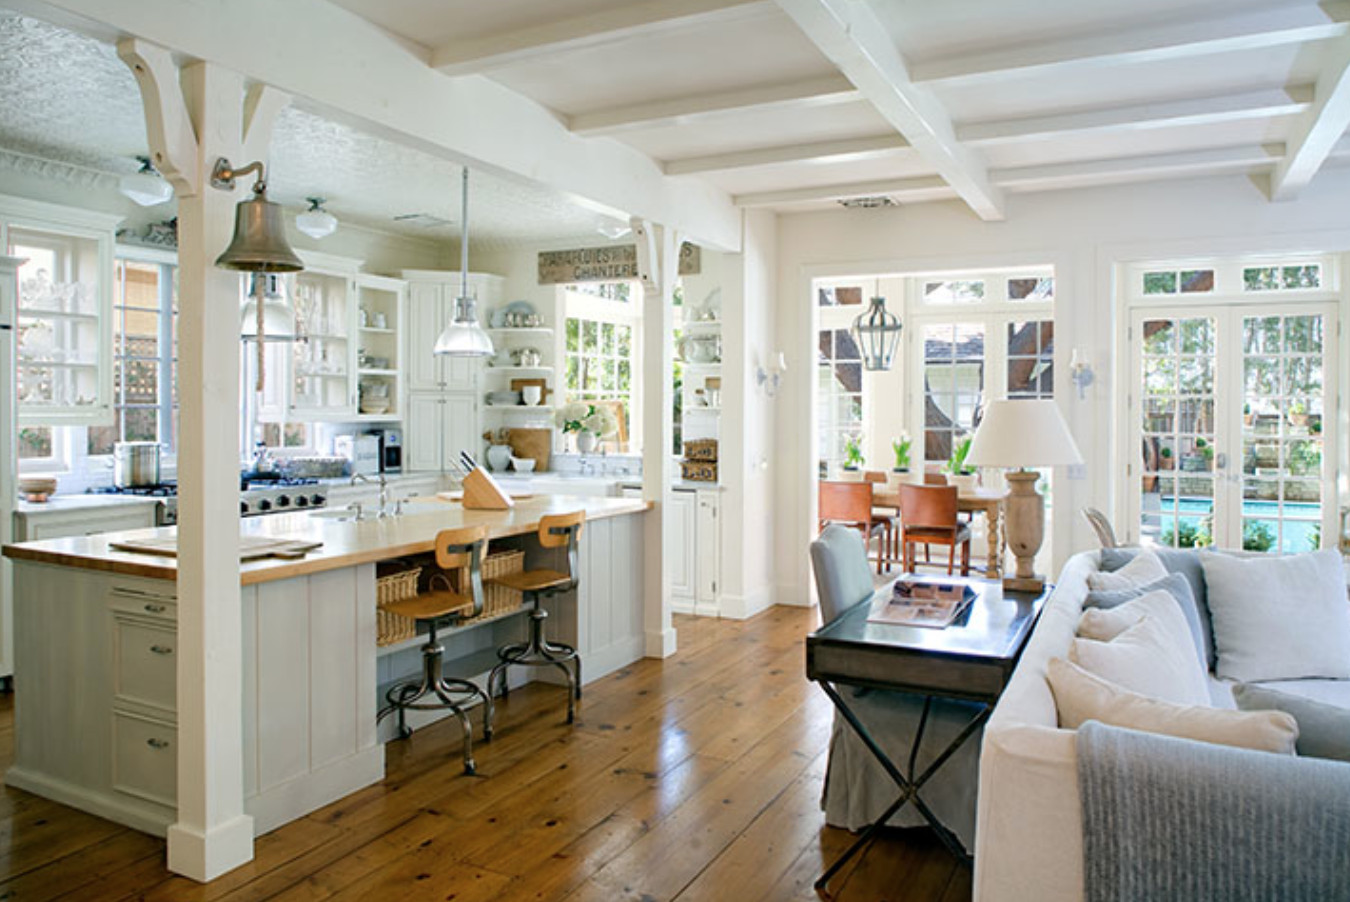 Best ideas about Kitchen Open To Family Room . Save or Pin Popular floor plans trends for today's Arizona home ers Now.